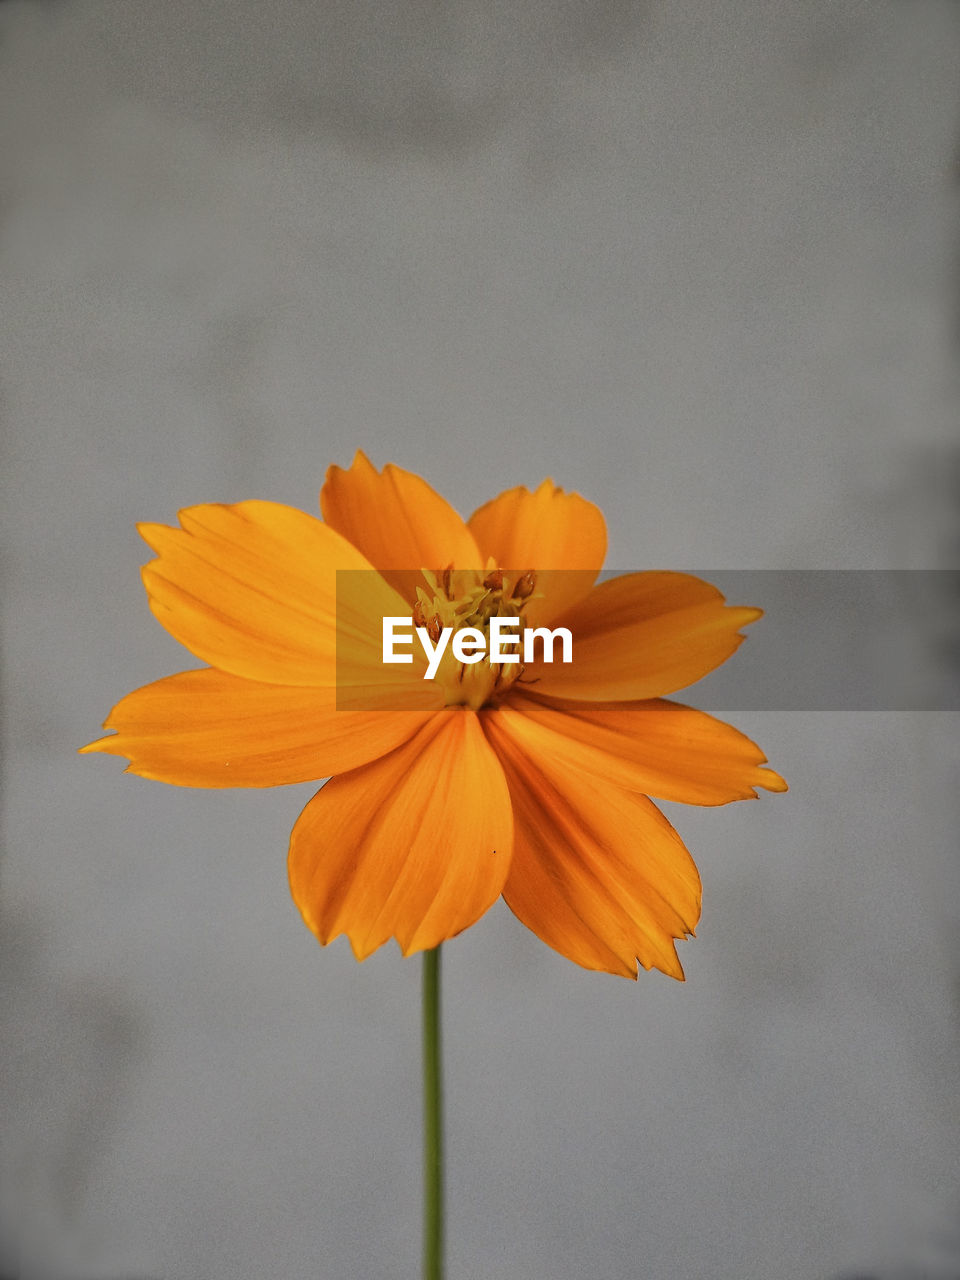 flowering plant, flower, petal, freshness, vulnerability, fragility, beauty in nature, flower head, inflorescence, close-up, plant, yellow, growth, orange color, no people, nature, focus on foreground, pollen, plant stem, sepal